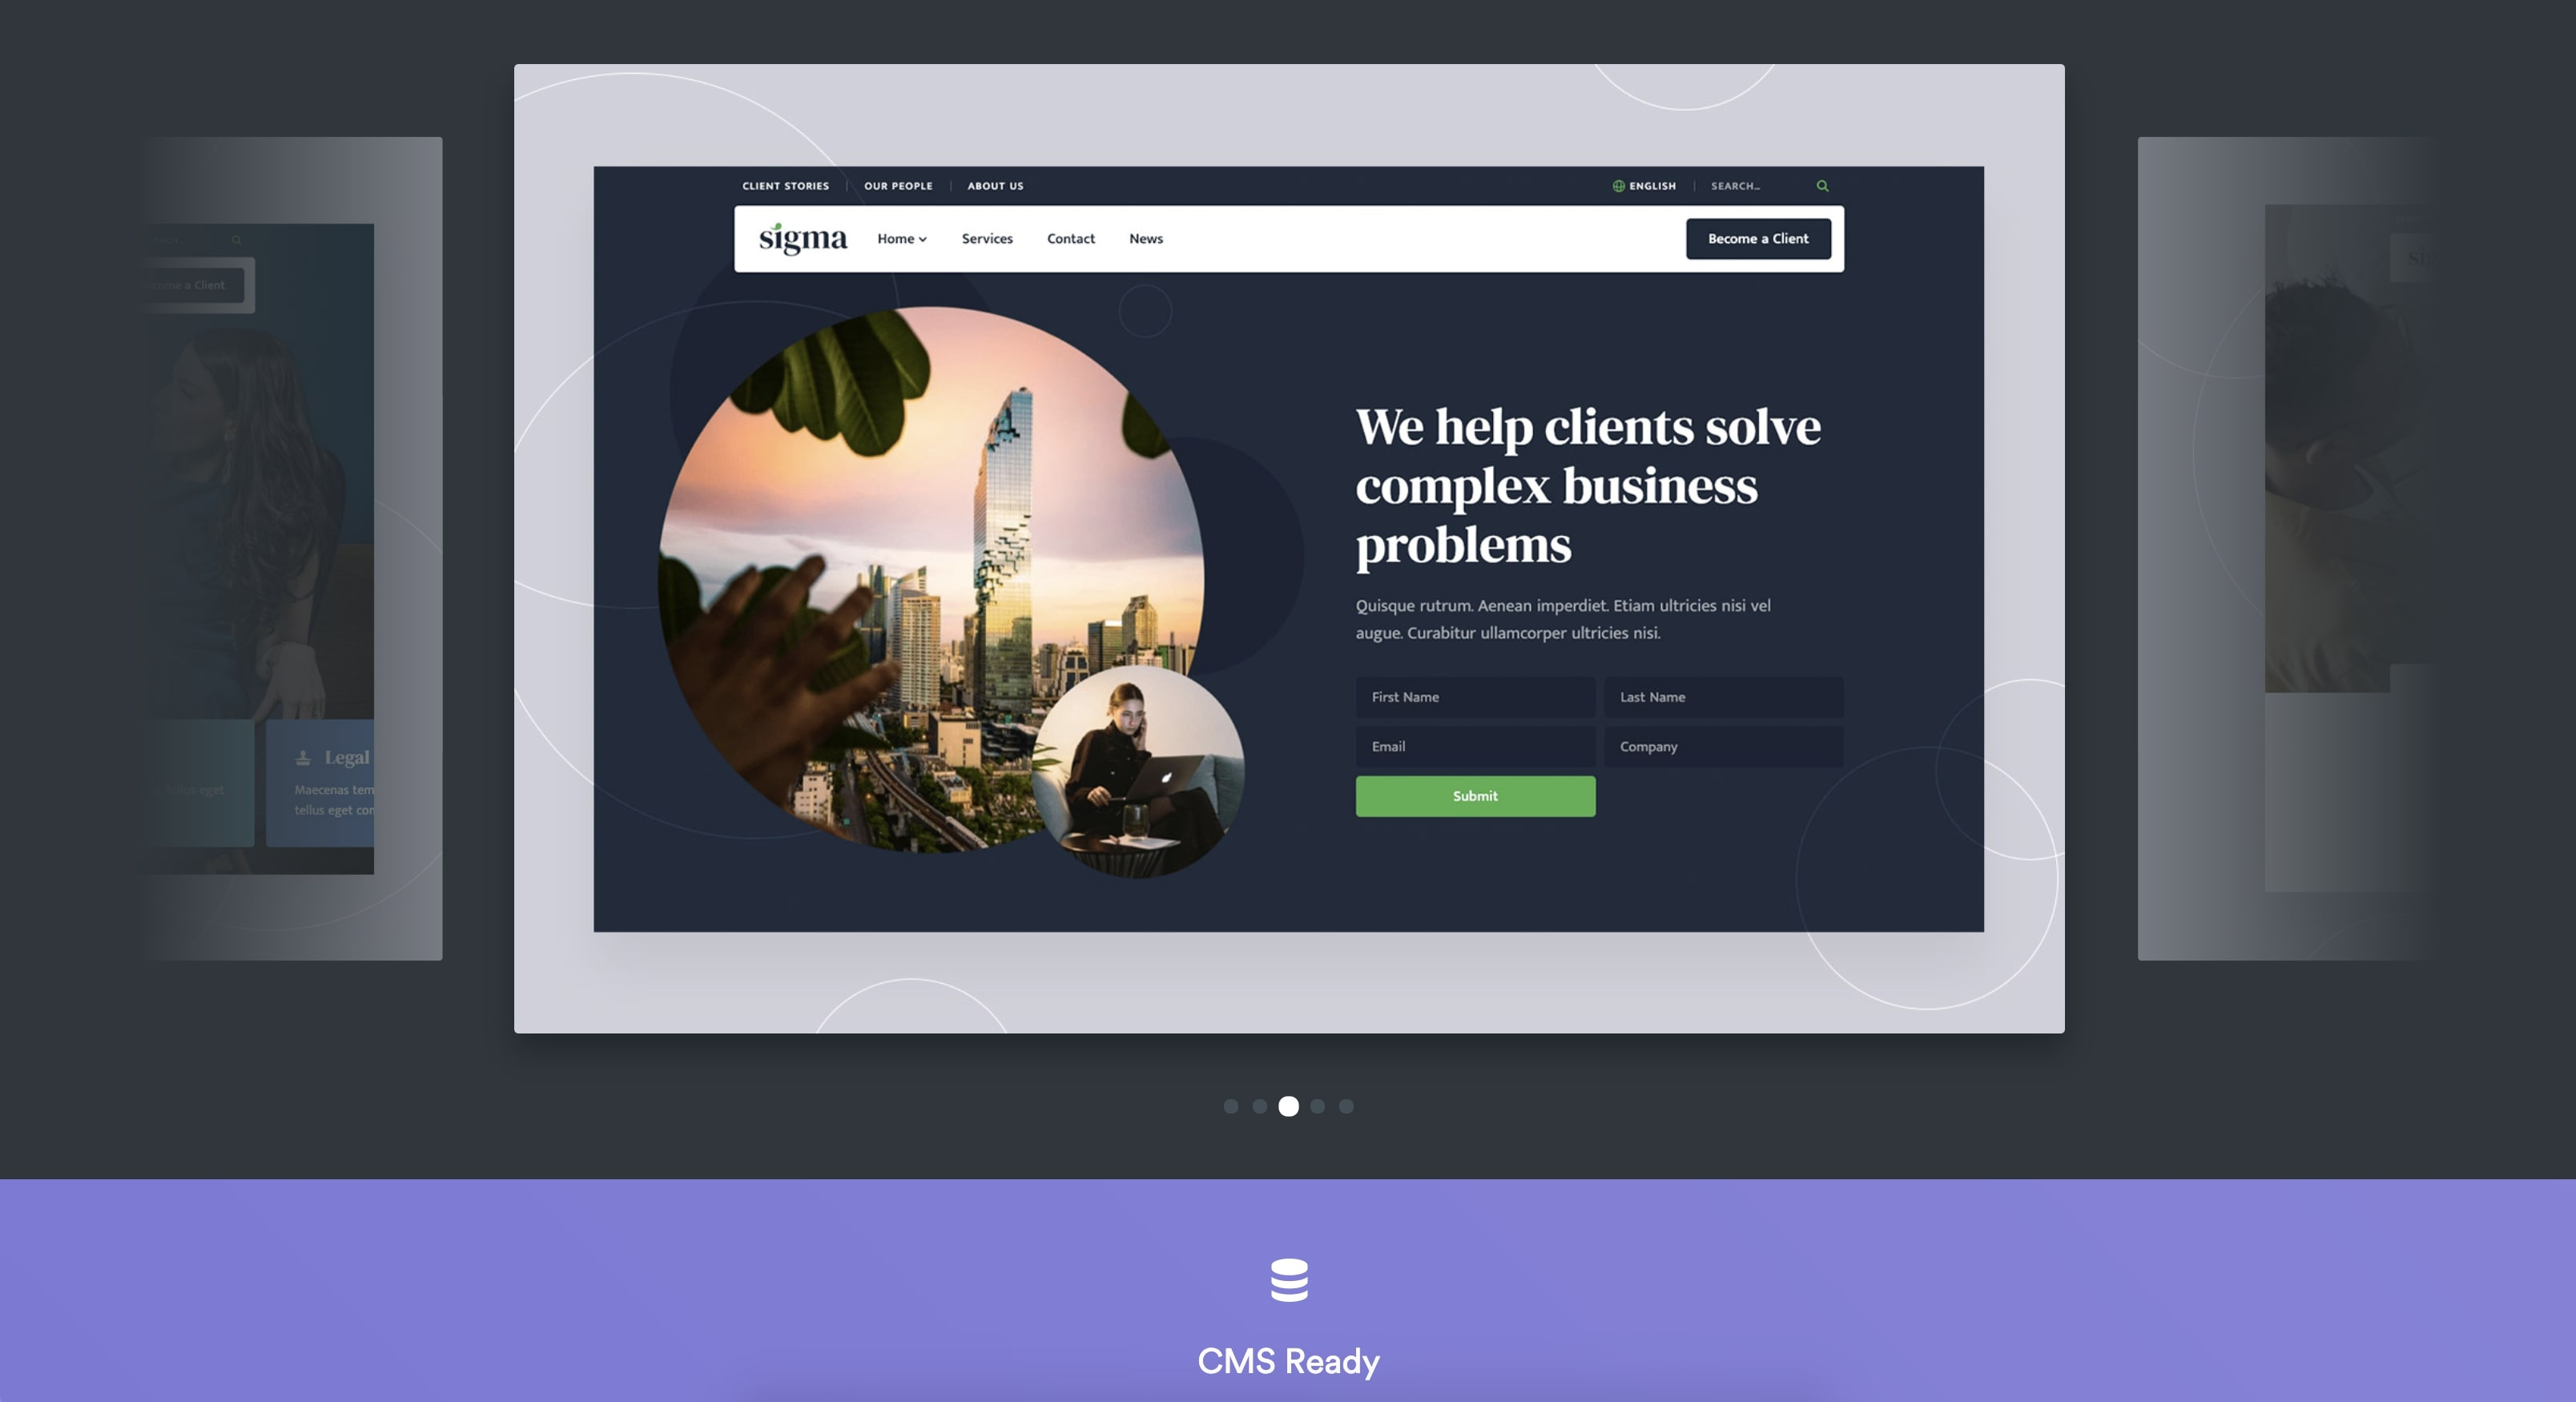 webflow template detail page